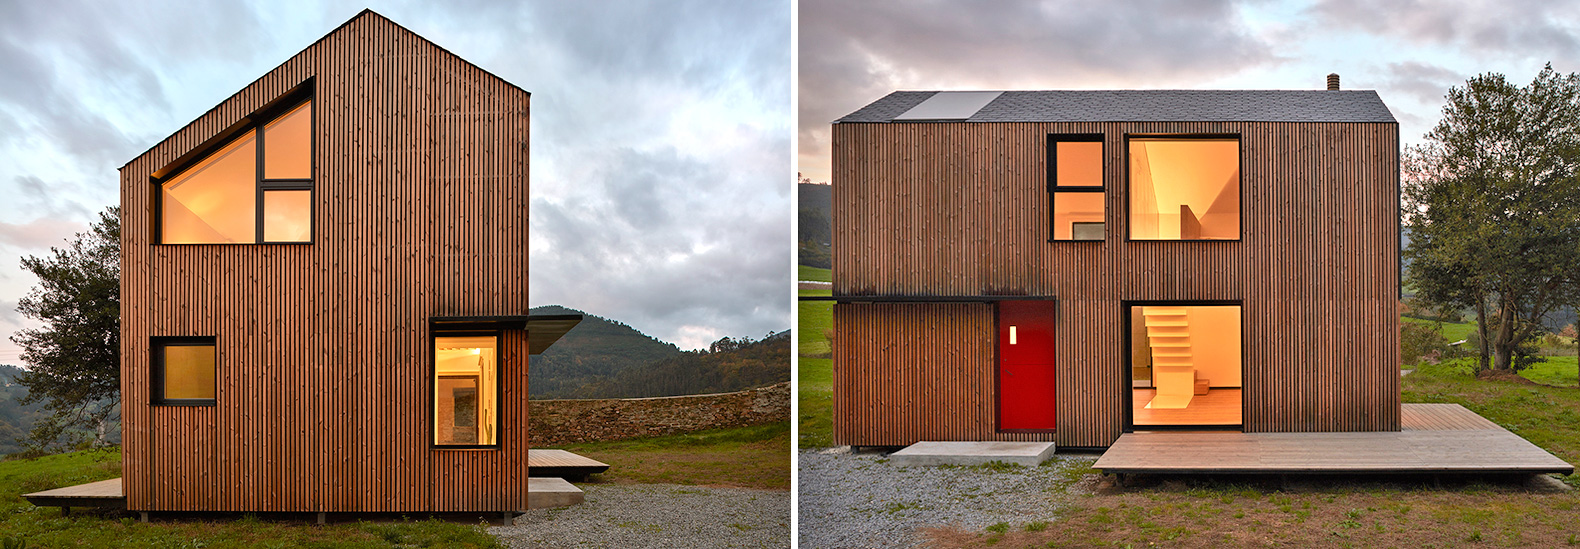 It took only five hours to assemble this small prefab house in Spain